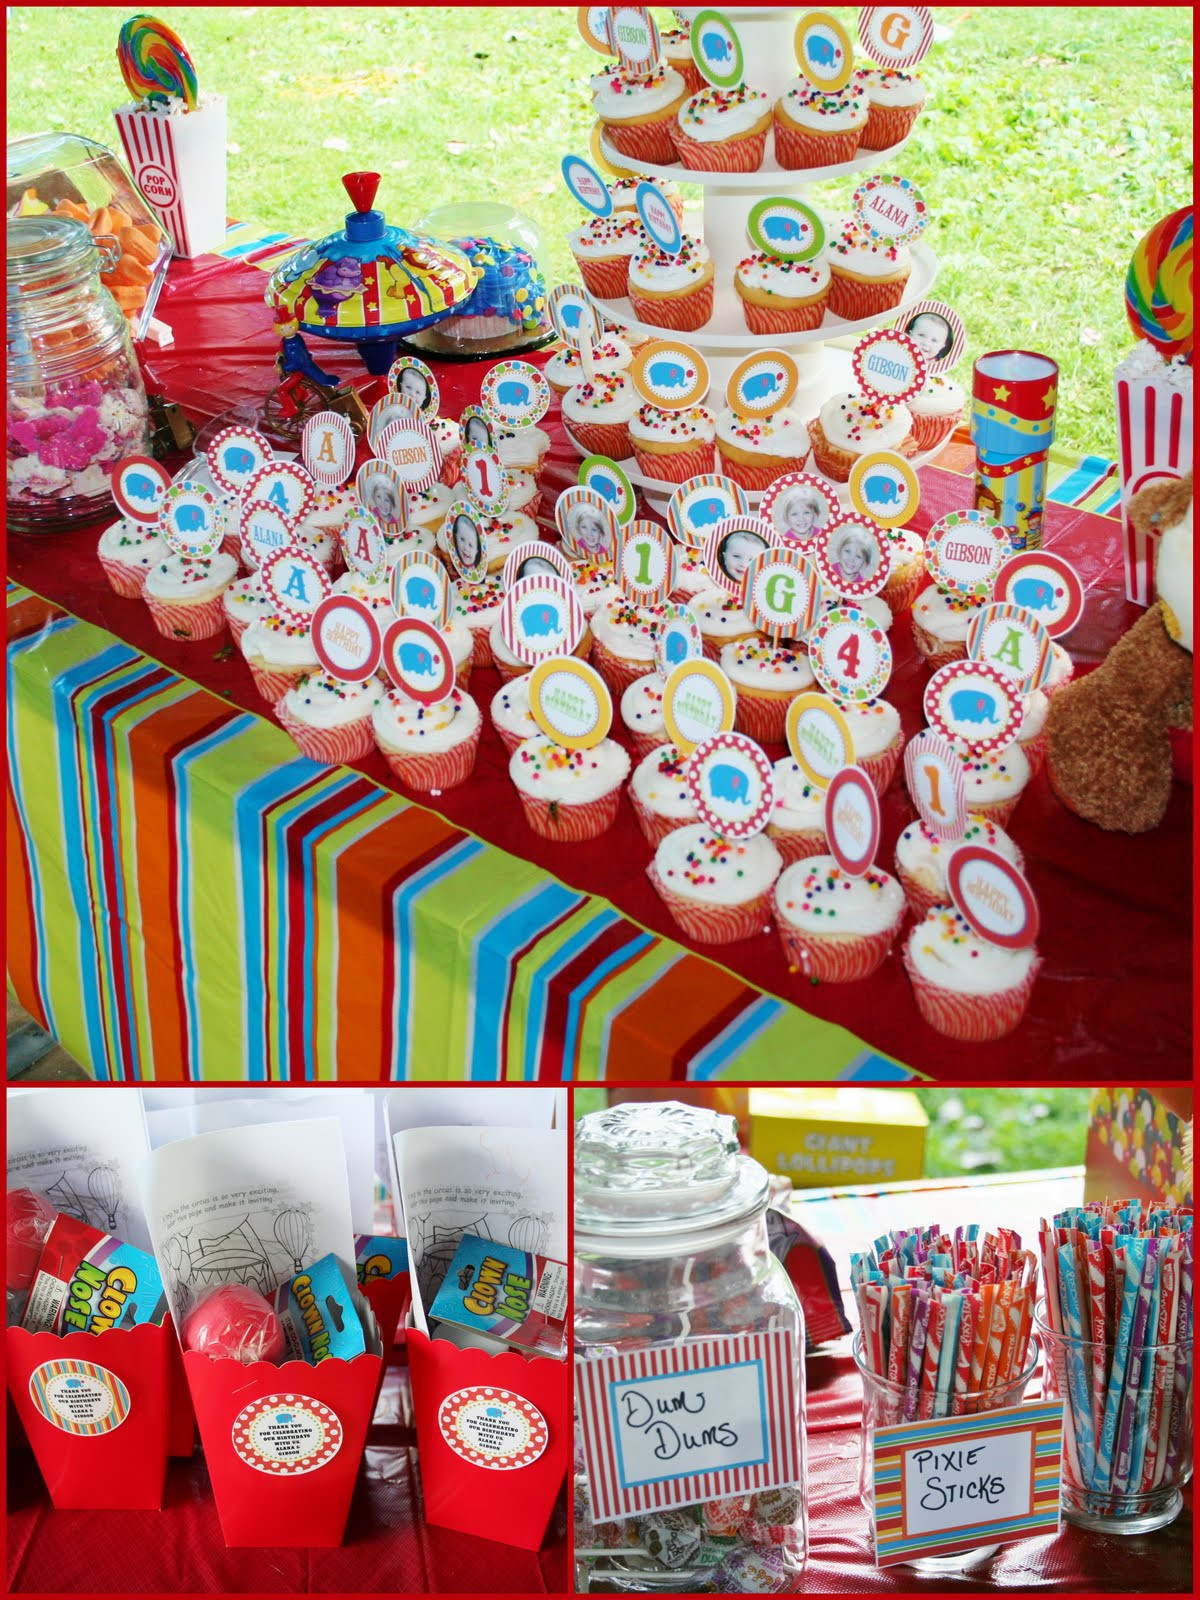 September Birthday Party Ideas  Oikology 101 Circus Birthday Party Overview